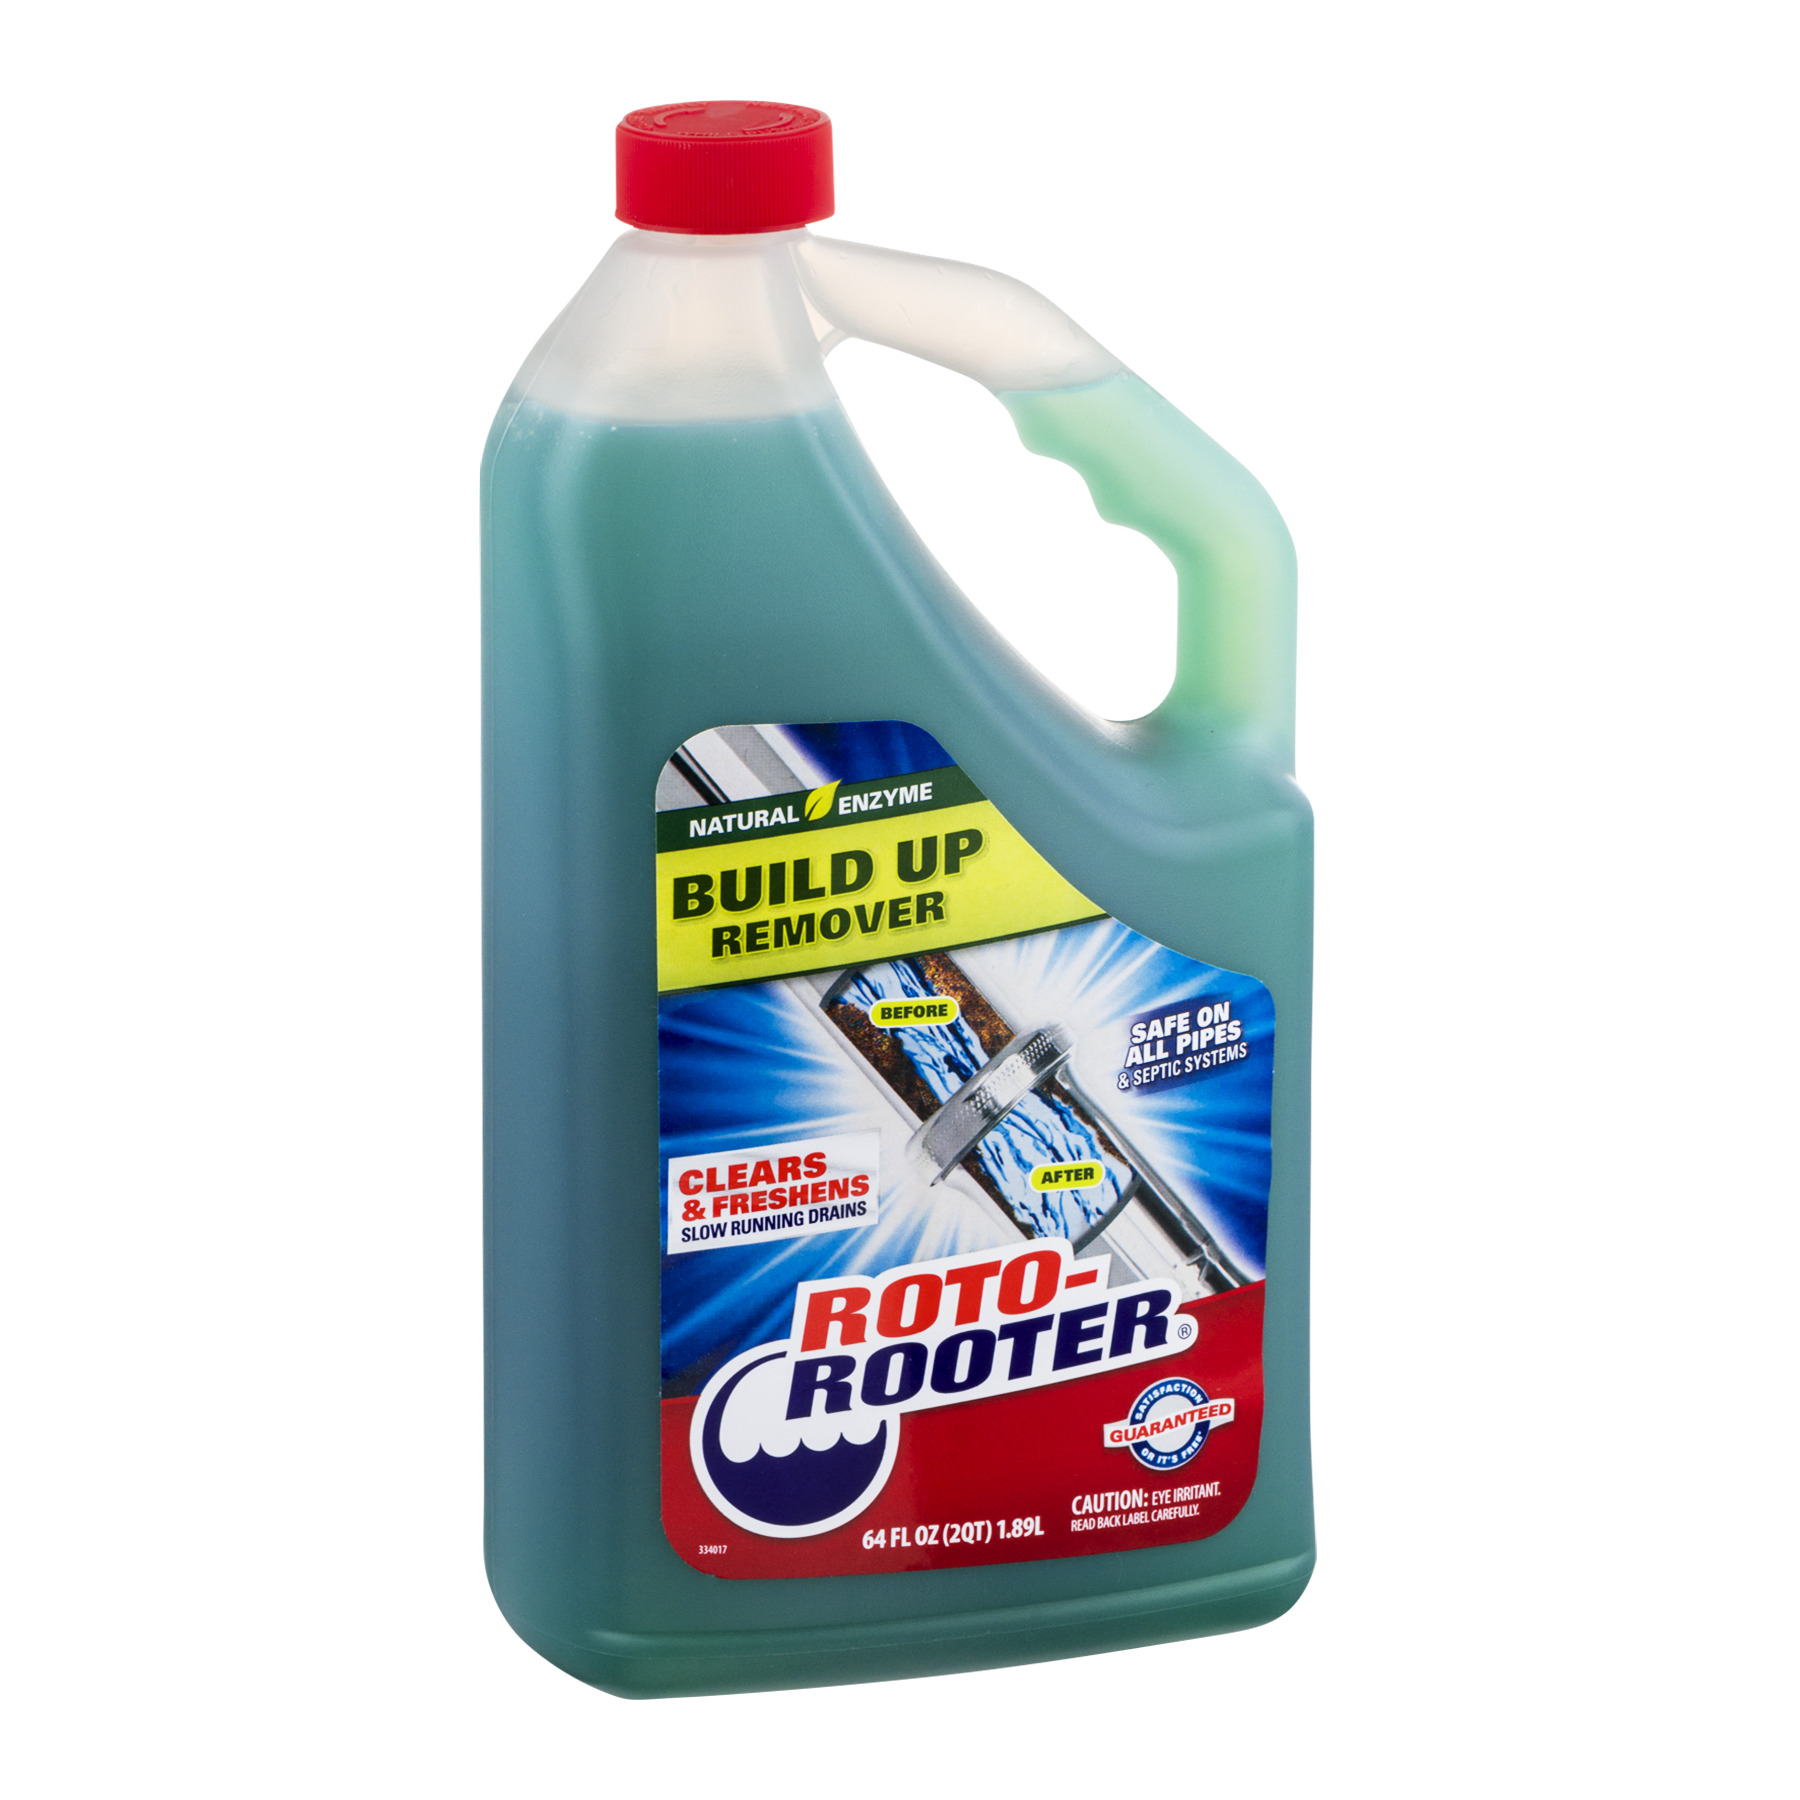 Roto-Rooter Build Up Remover, 64.0 FL OZ - Walmart.com